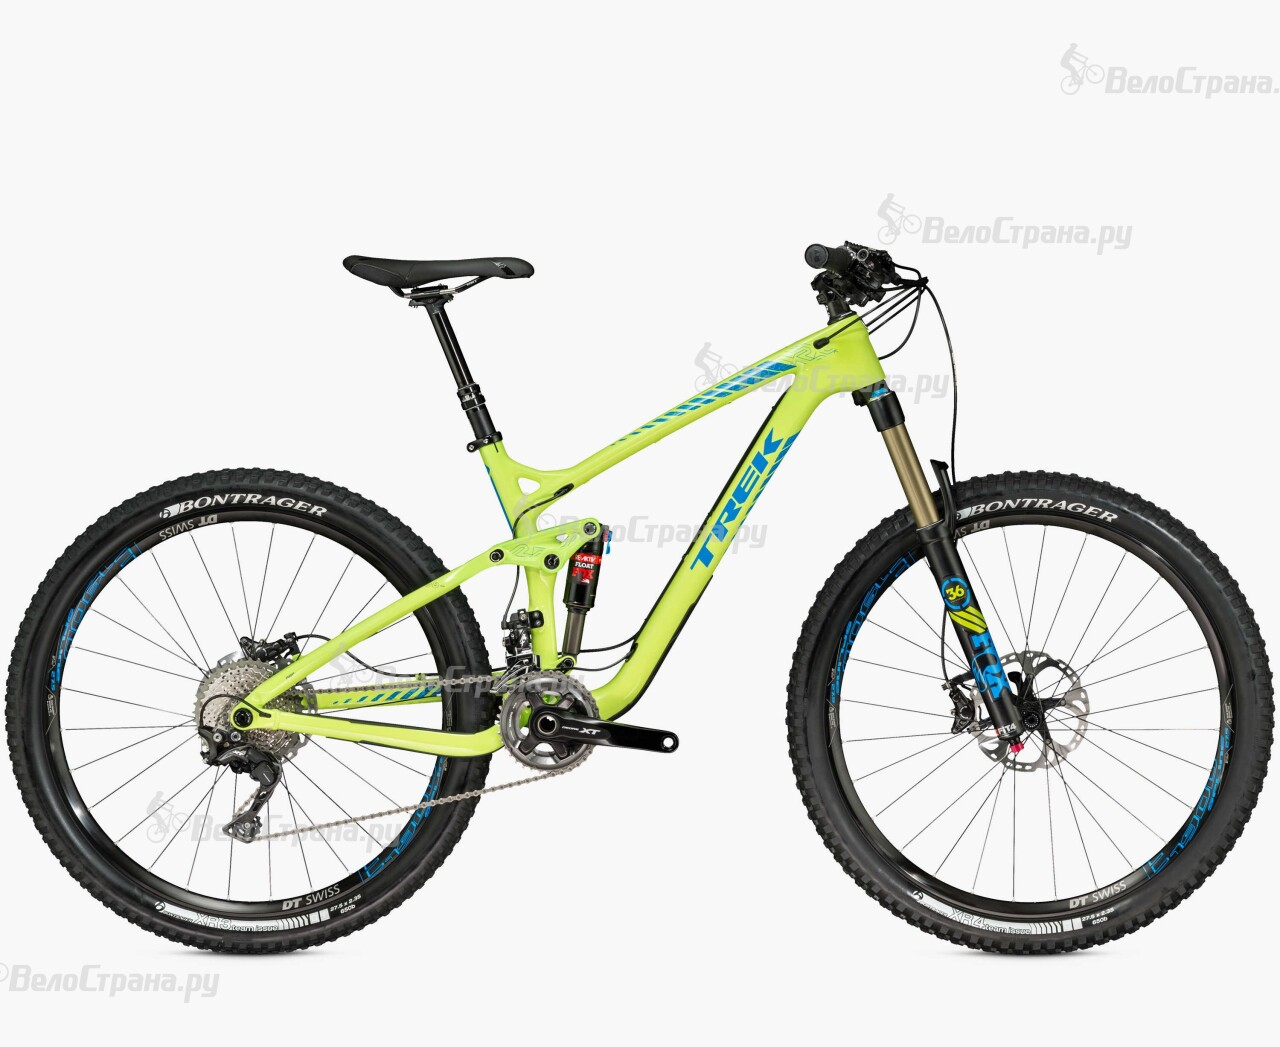 Велосипед Trek Remedy 9.8 27.5 (2016) велосипед trek remedy 7 27 5 2016